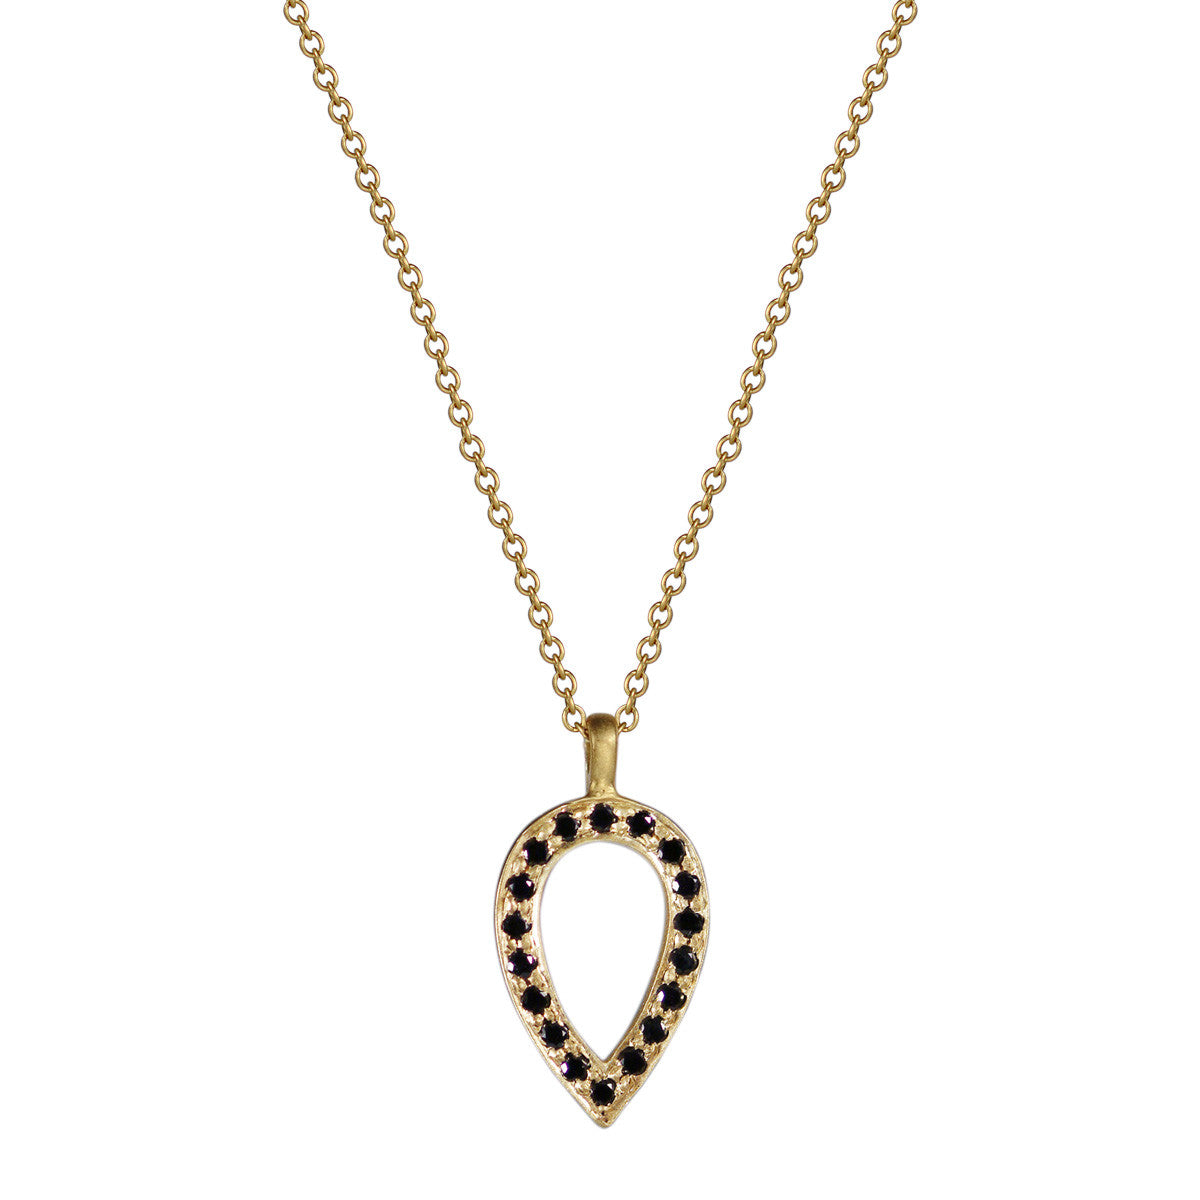 18K Gold Black Diamond Pave Teardrop Pendant